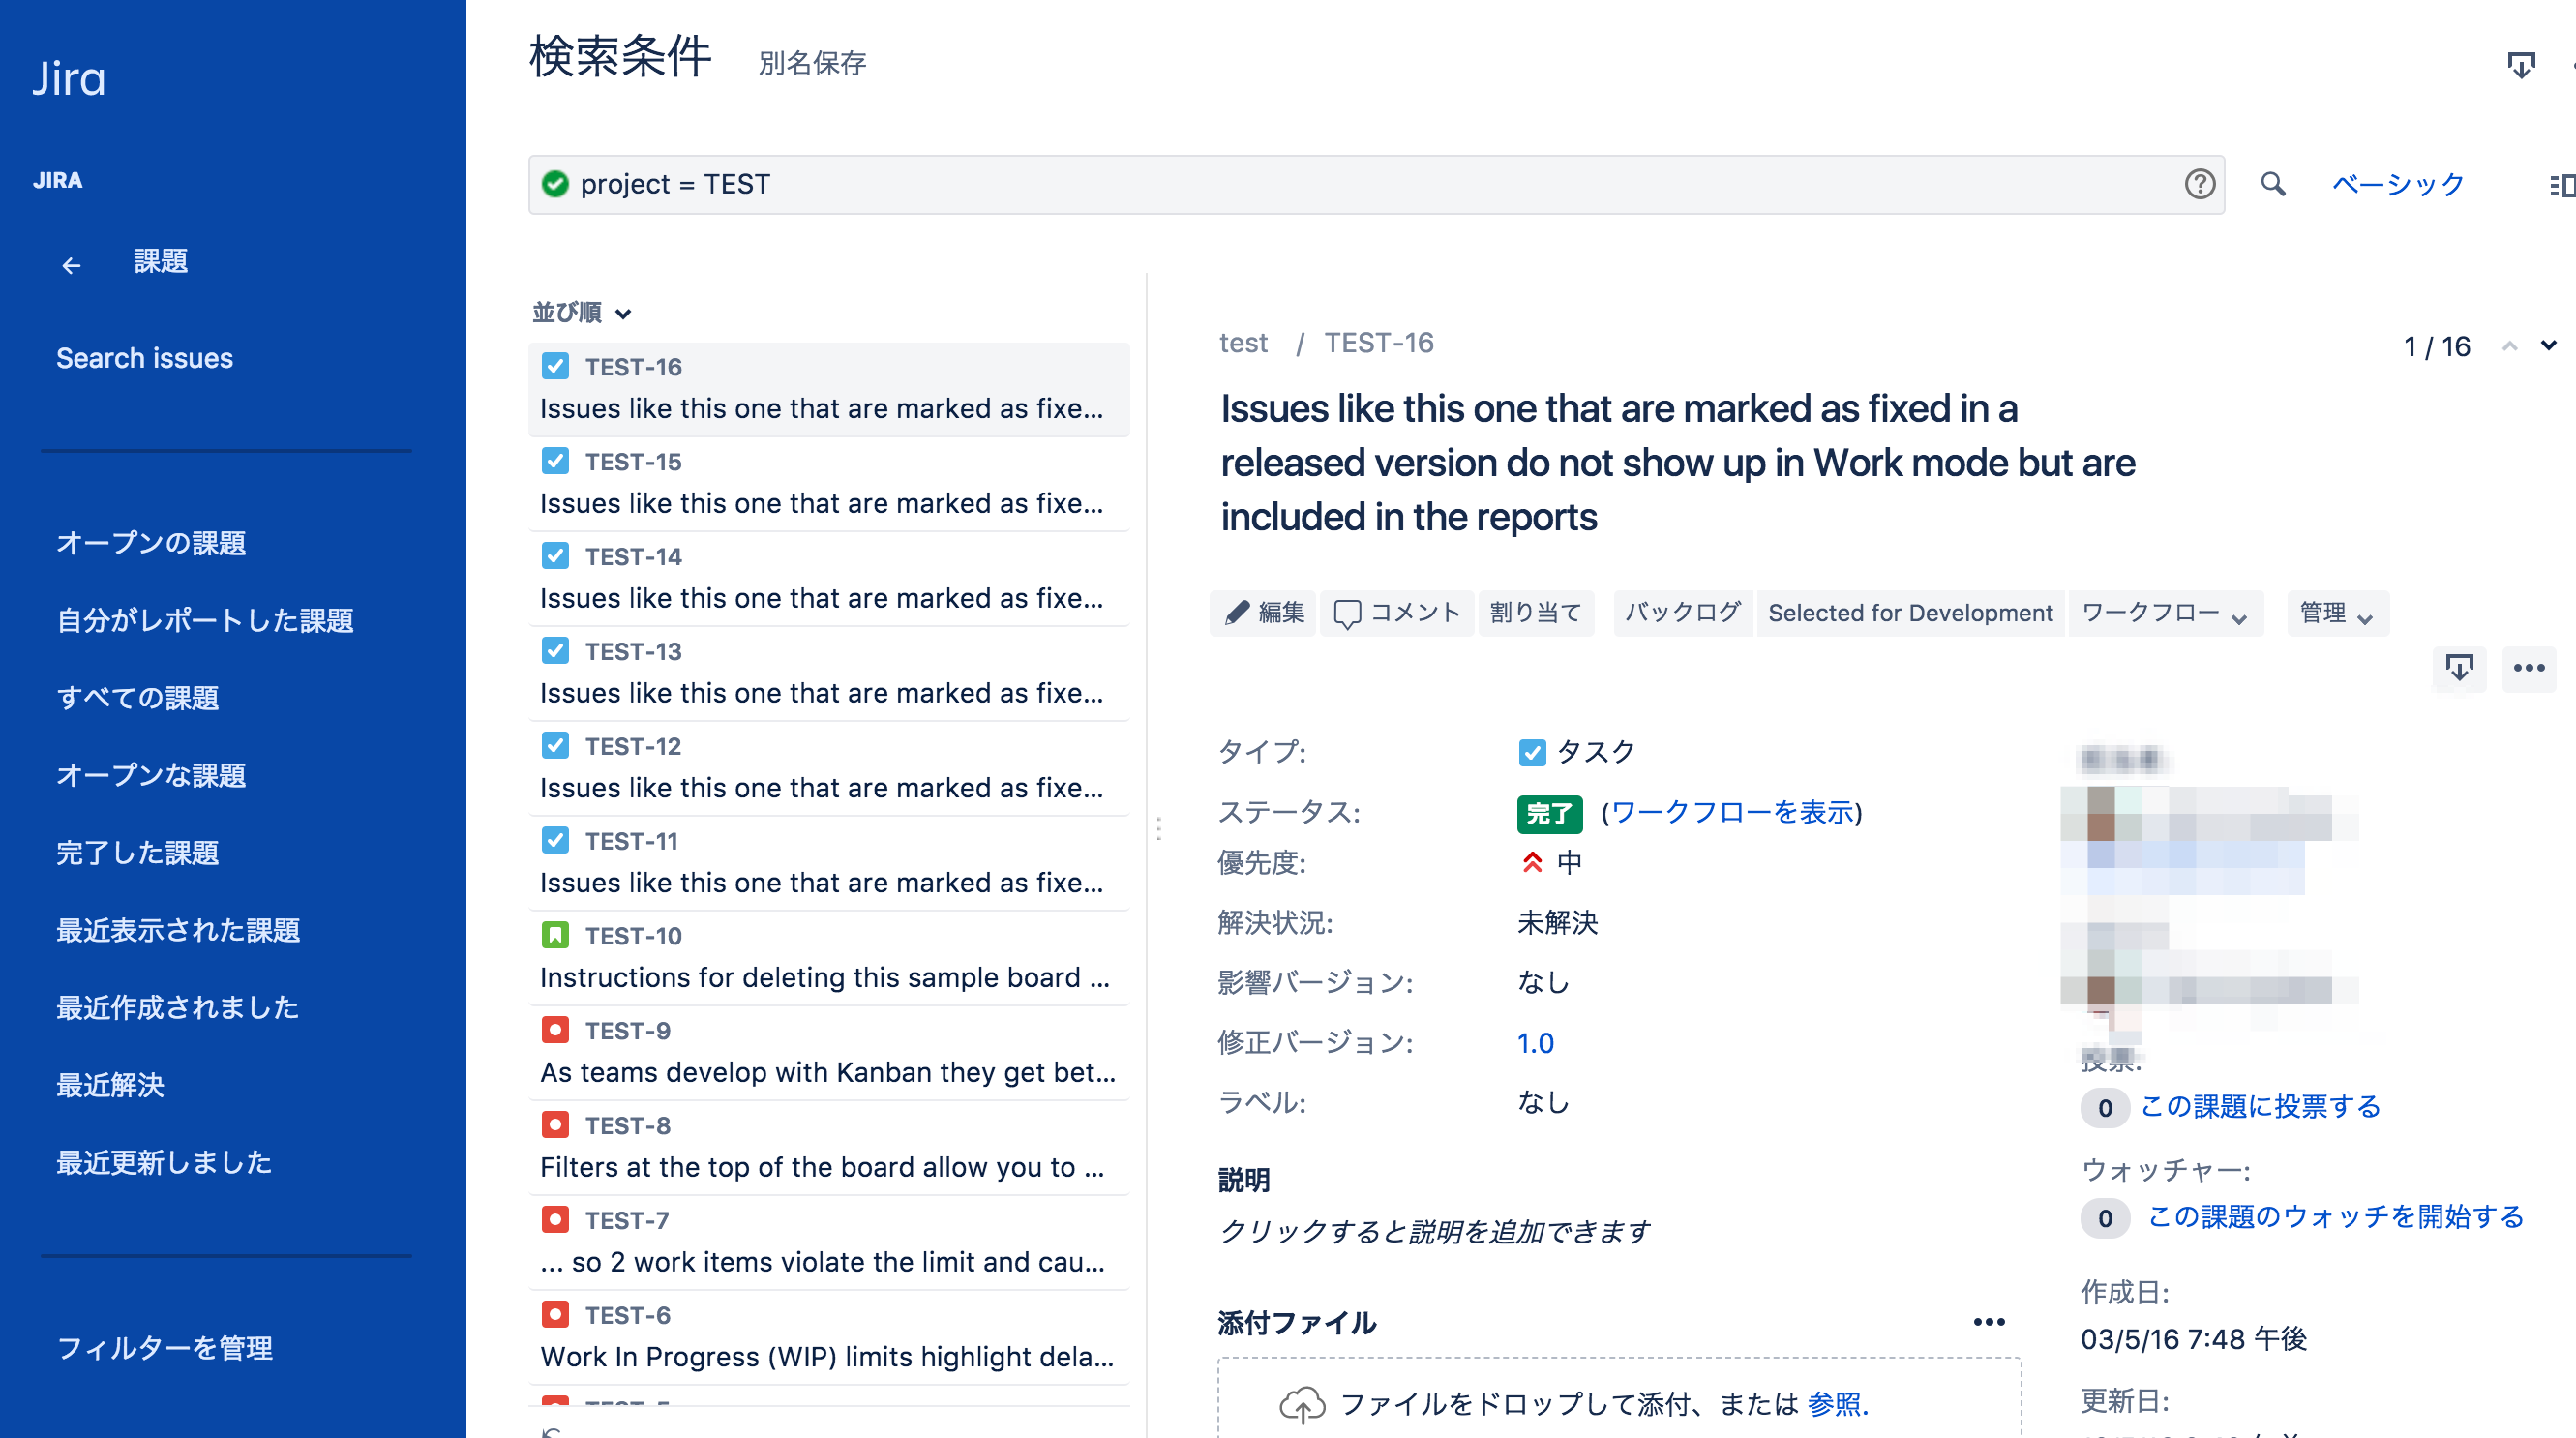 _TEST-16__Issues_like_this_one_that_are_marked_as_fixed_in_a_released_version_do_not_show_up_in_Work_mode_but_are_included_in_the_reports_-_JIRA.png